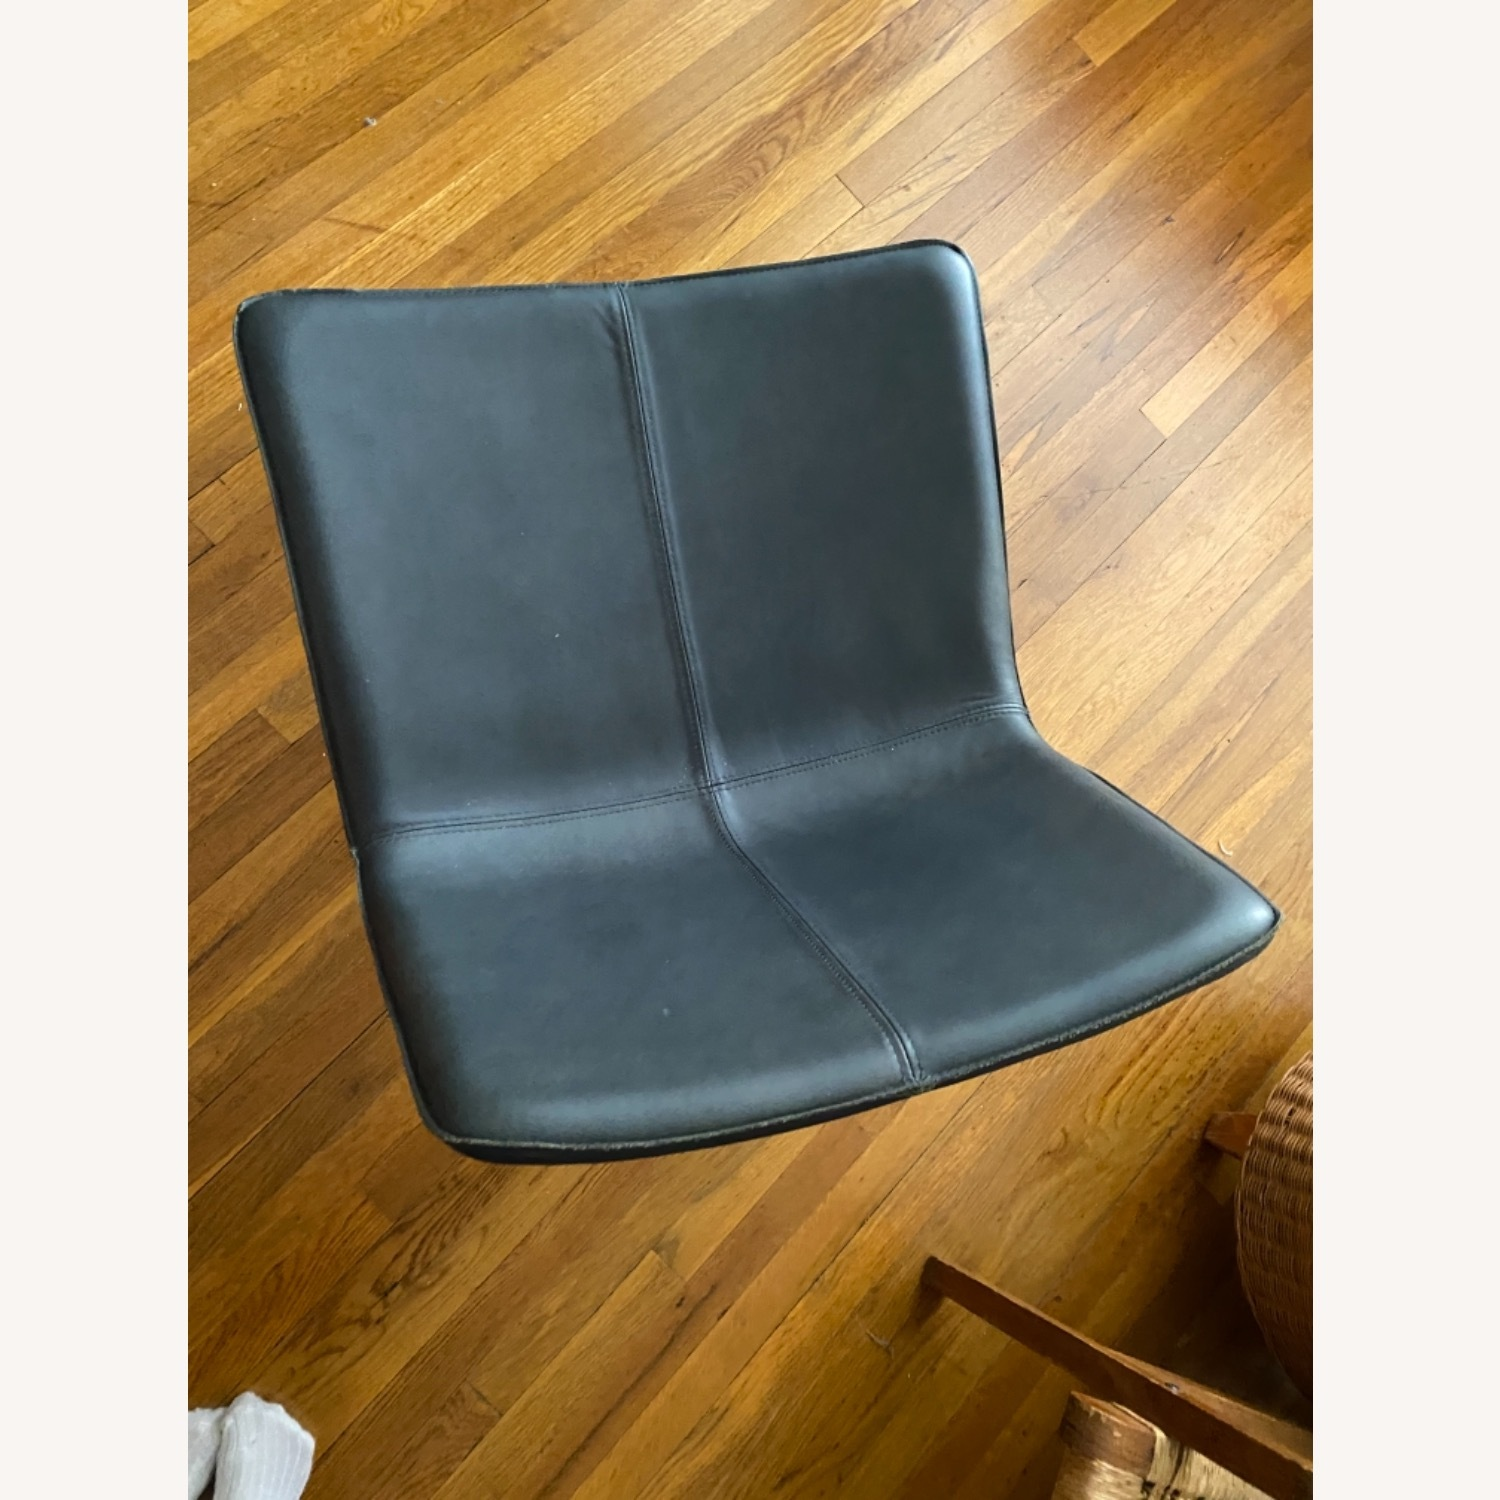 West Elm Leather Rare Navy Slope Leather Chair - image-3